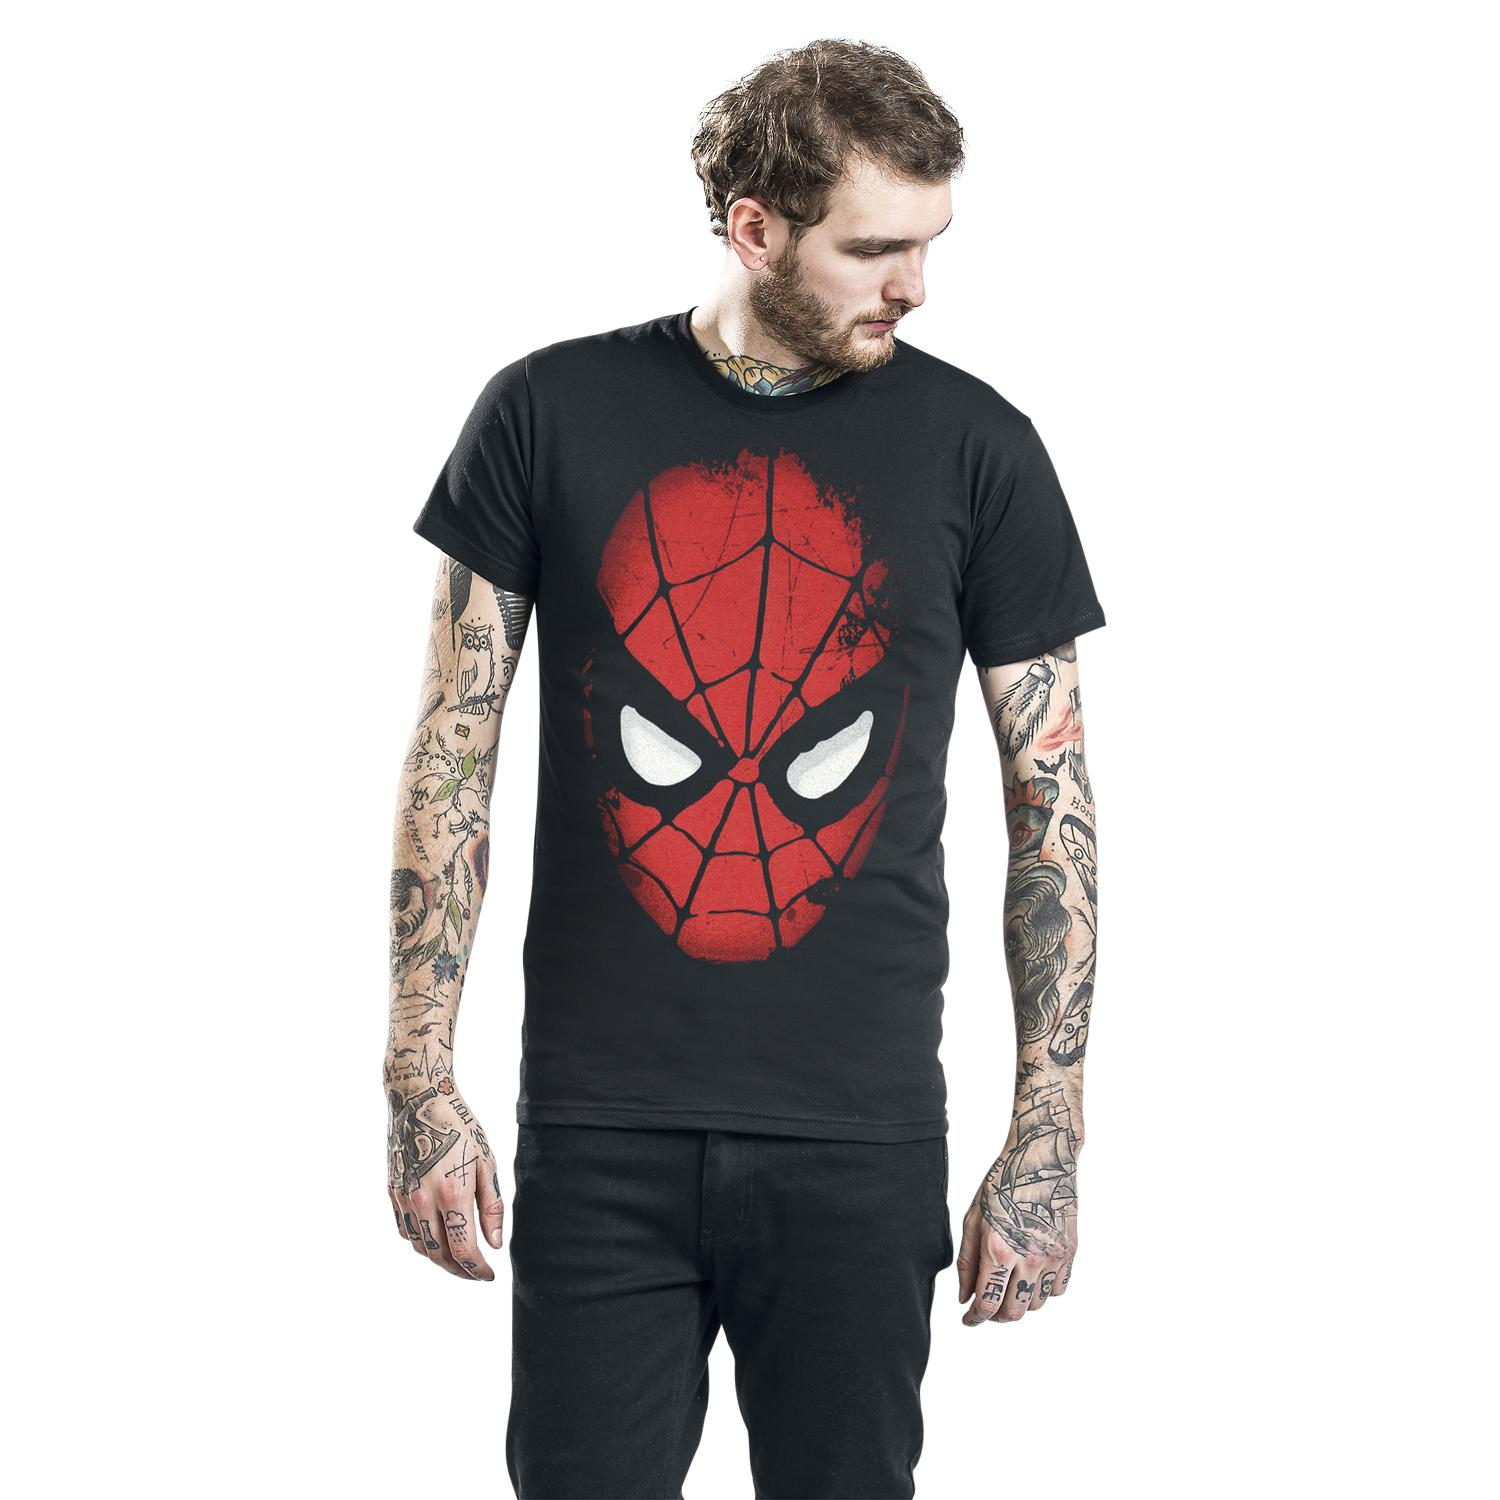 Big Face Spider Man T-shirt Design T-shirt